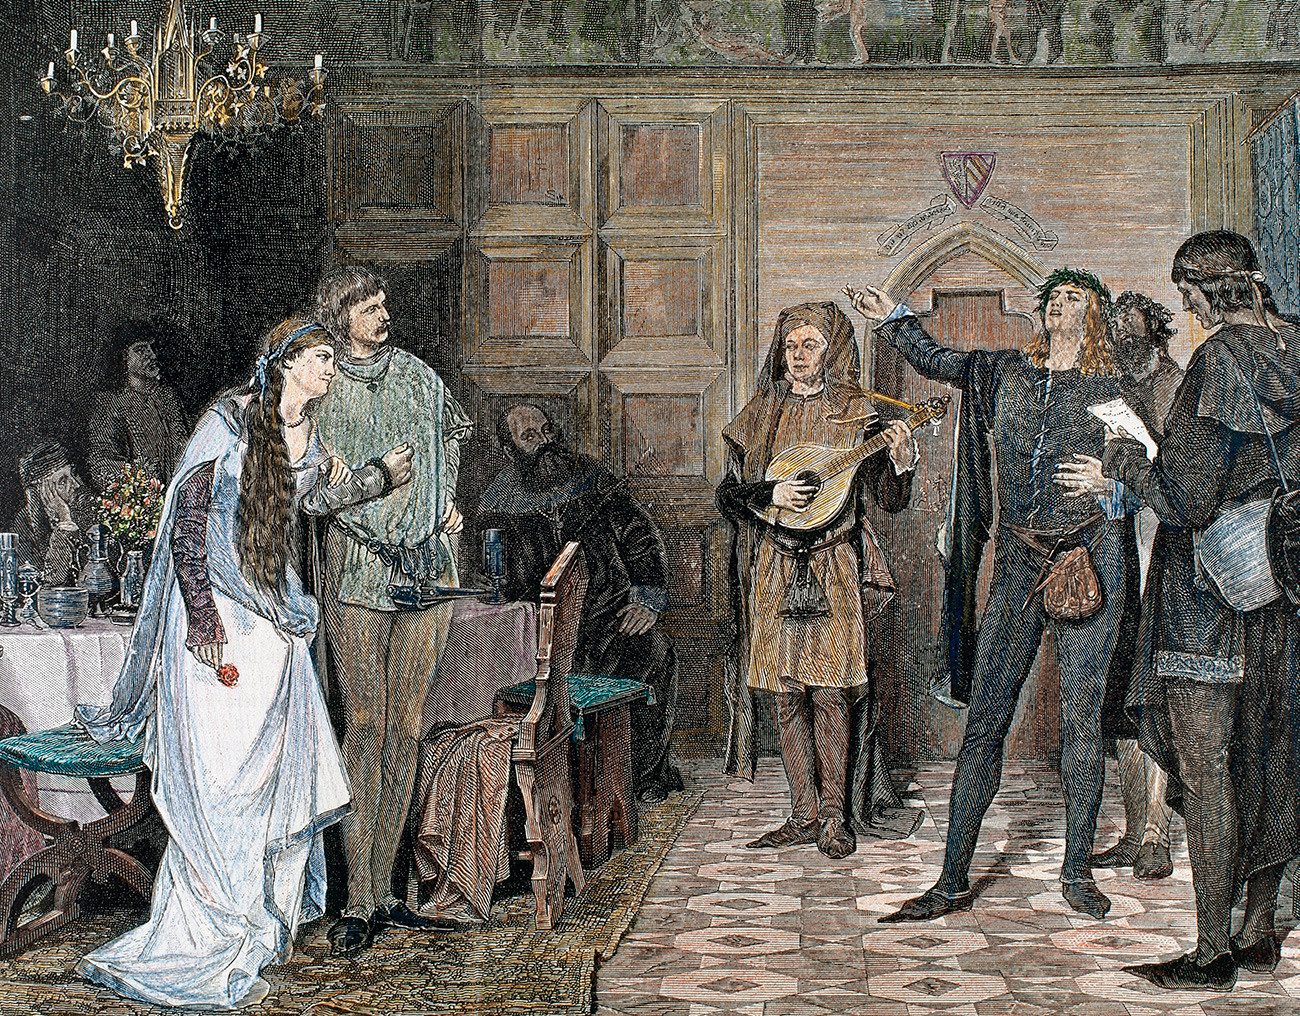 Troubadours singing and reciting one of his poems, written in Occitan. 12th and 13th centuries. Colored engraving